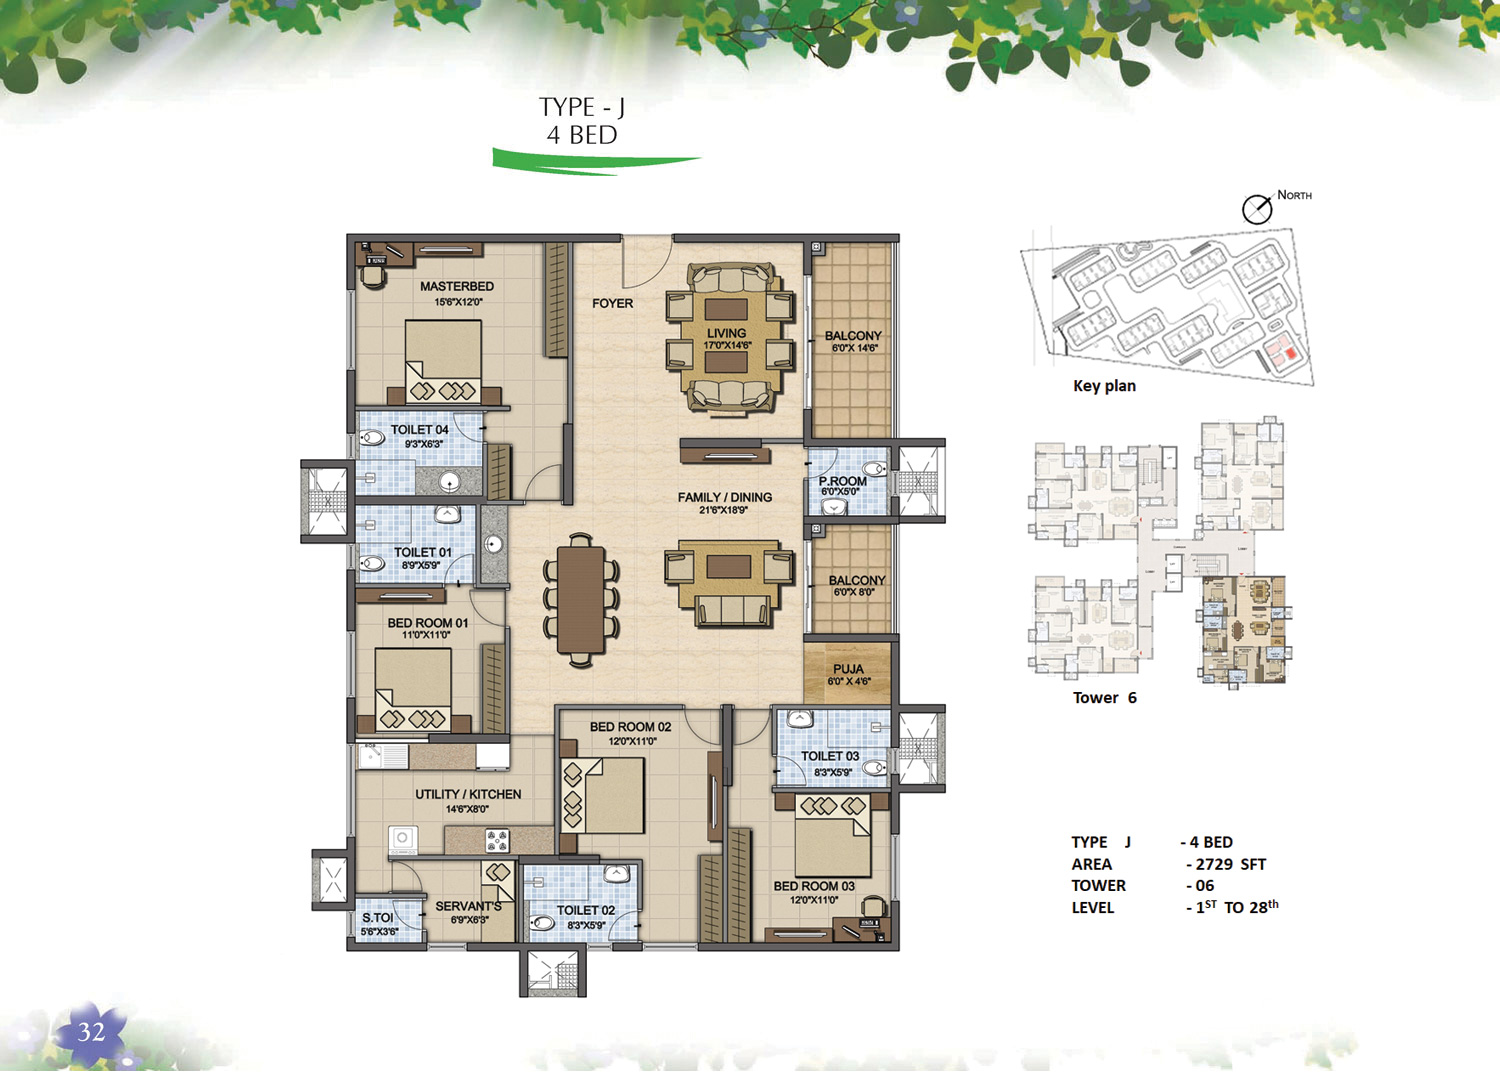 Type J - 4 Bed - 2729 Sq Ft